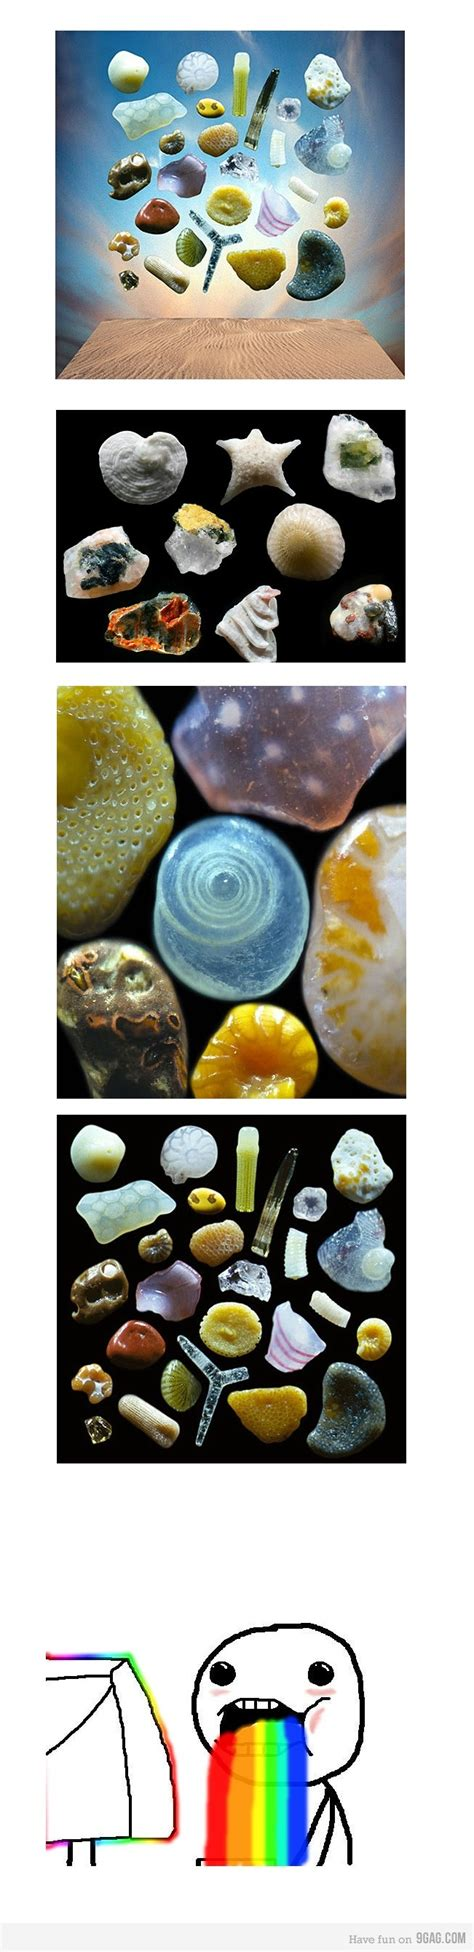 17 Best Images About Grains Of Sand Magnified On Pinterest  Pictures Of, Micro Photography And